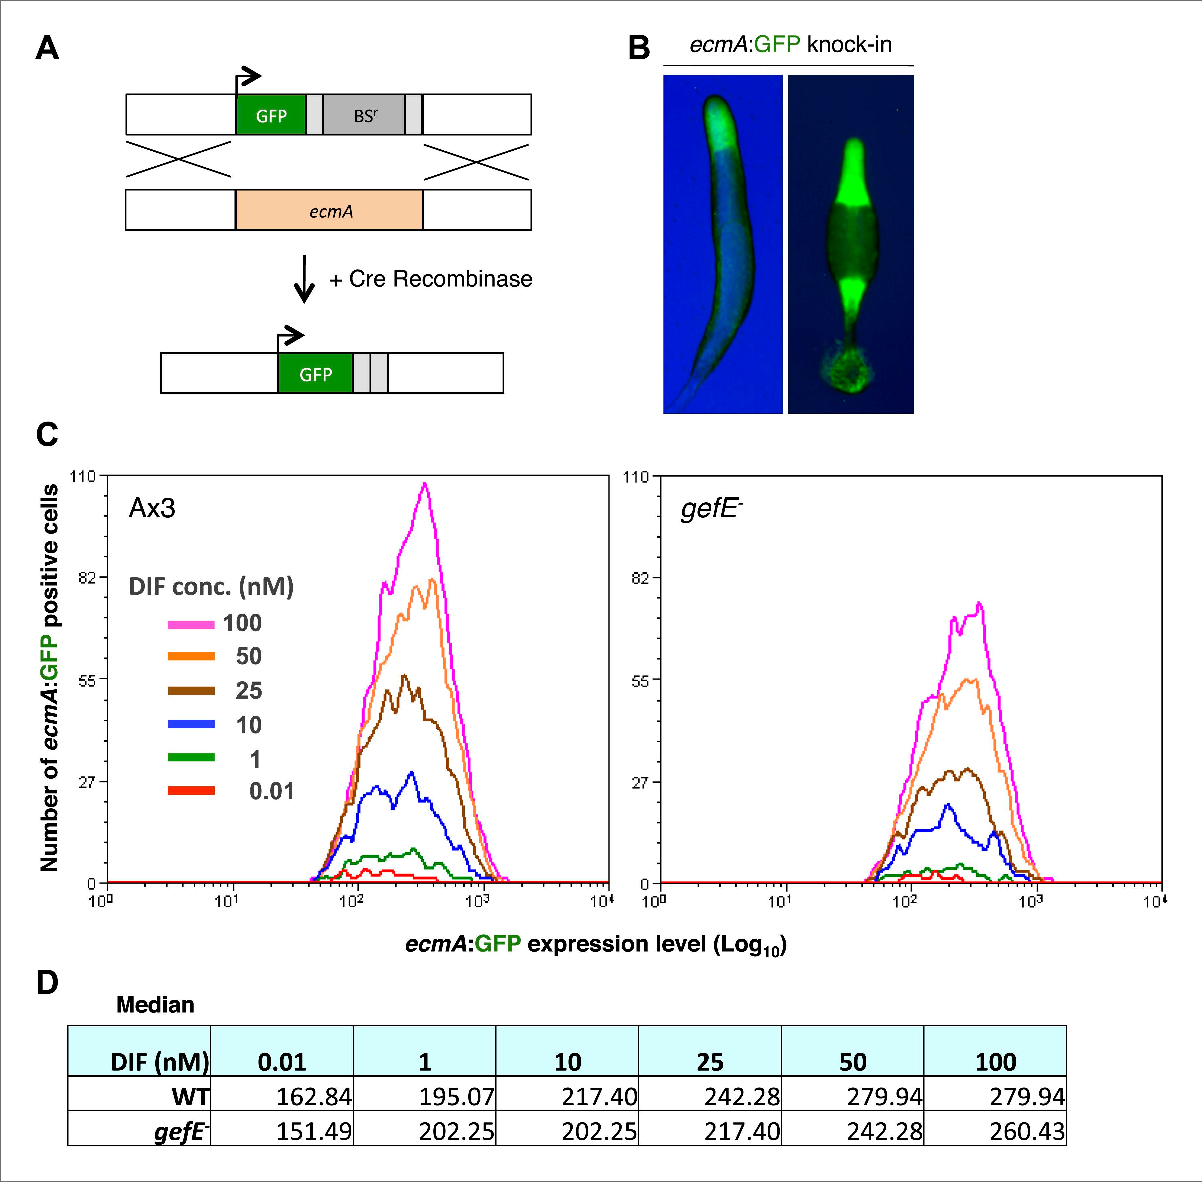 Figure 5. GefE regulates the DIF response threshold. (A) Replacement of the endogenous ecmA gene with GFP (B) prestalk specific expression of GFP knock-in strain at slug and culminant stages. (C) FACS analysis of Ax3 wild type and gefE− mutant GFP knock-in strains stimulated with 0.01–100 nM DIF for 9 hr. Y-axis shows the number responders and X-axis the GFP expression level per cell. (D) Median GFP expression level of wild type and gefE− mutant populations stimulated with 0.01–100 nM DIF. DOI: 10.7554/eLife.01067.012